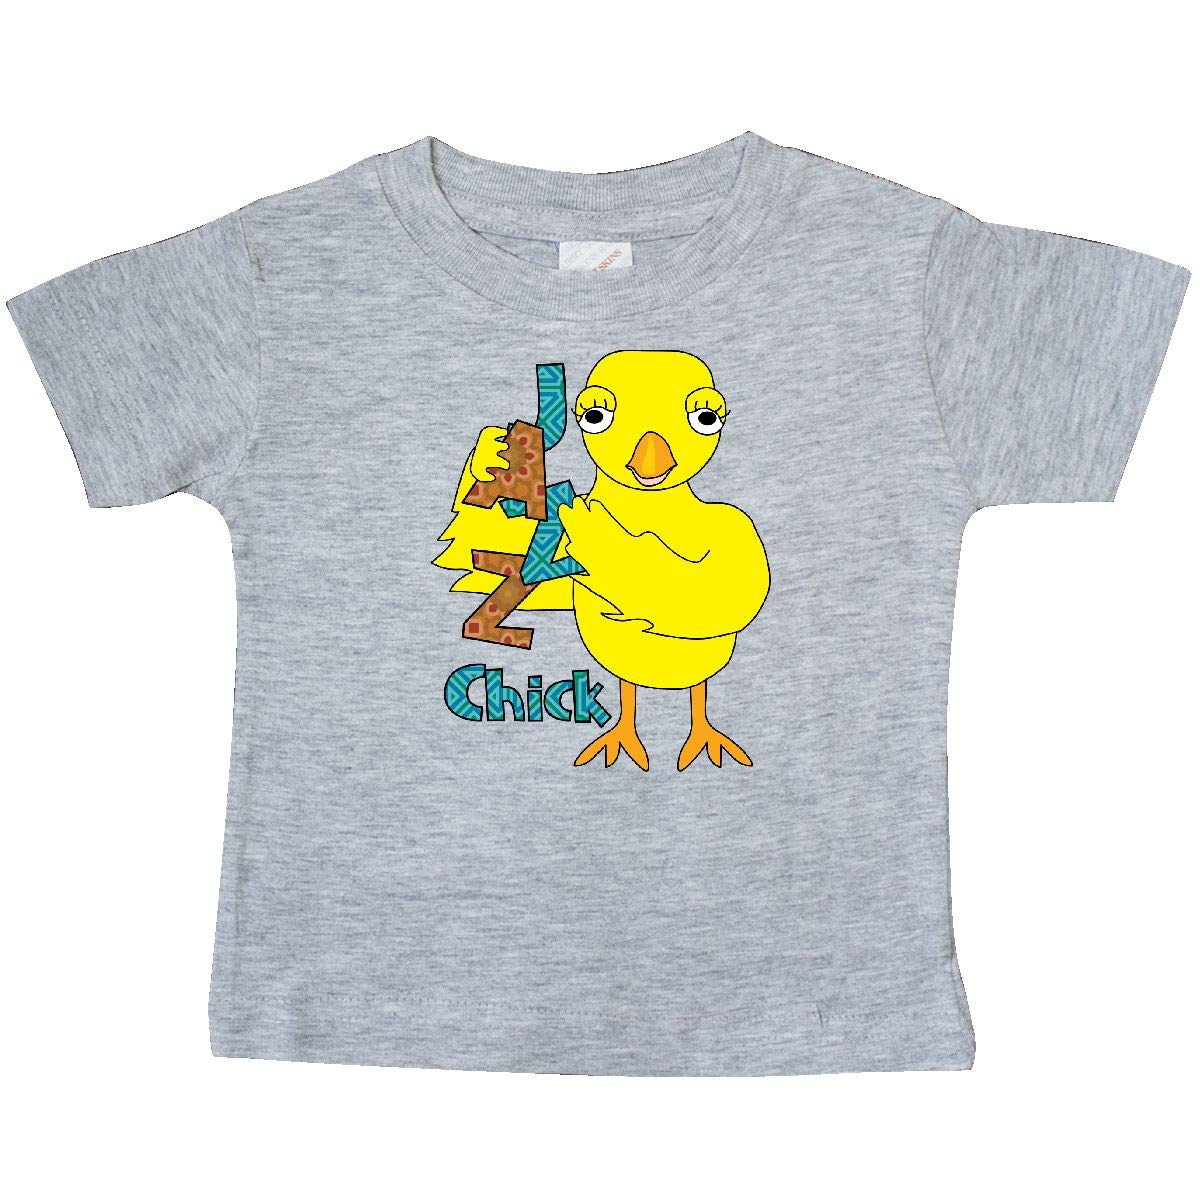 inktastic Jazz Chick Patterned Text Baby T-Shirt